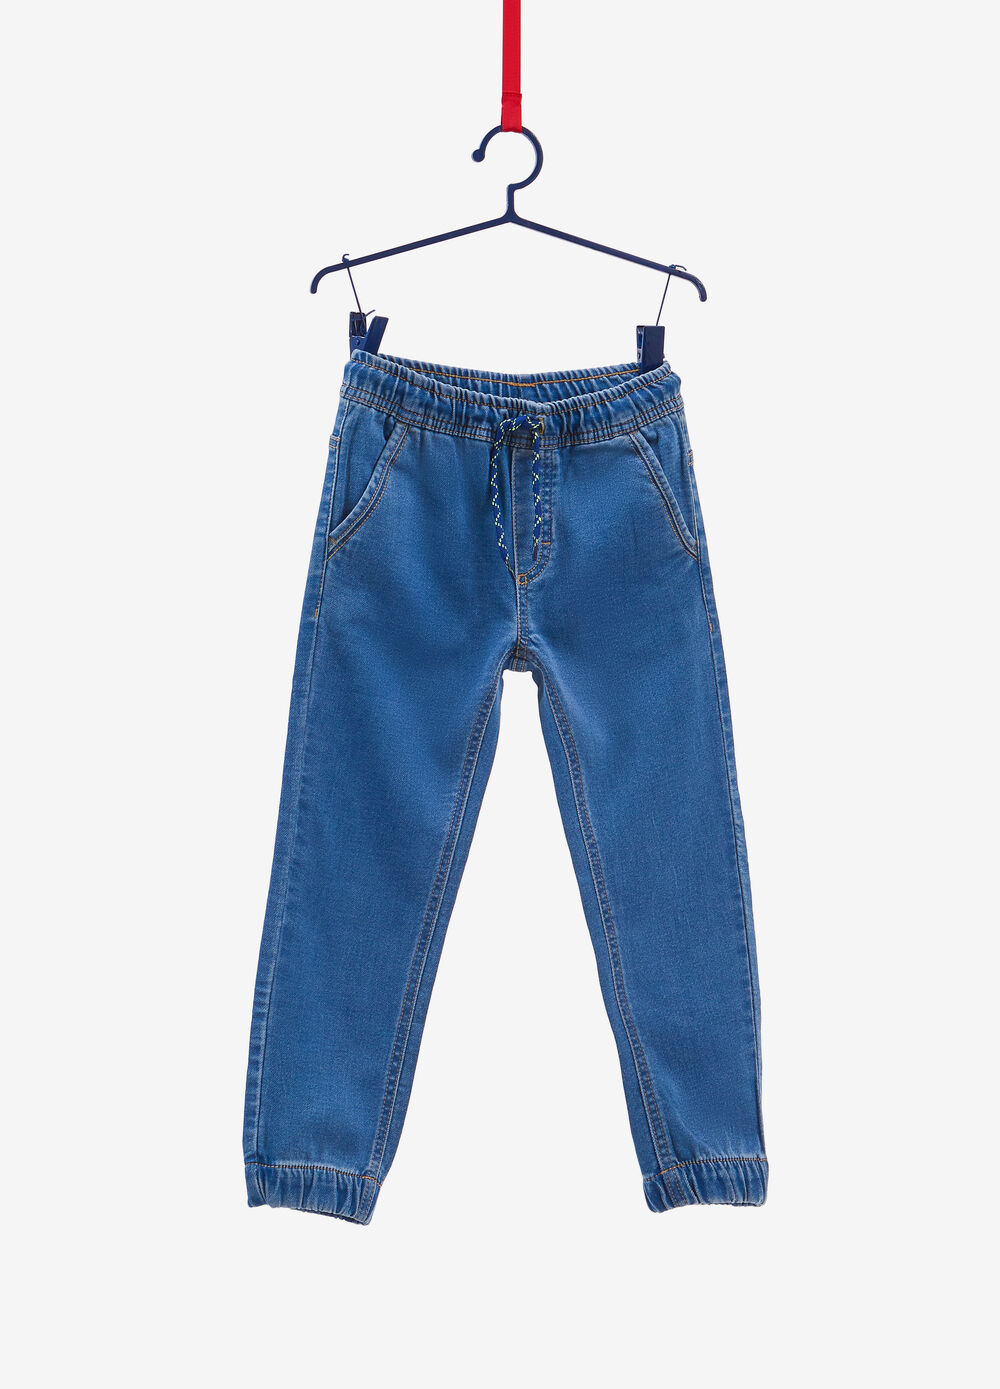 Jogger-fit stretch jeans with drawstring